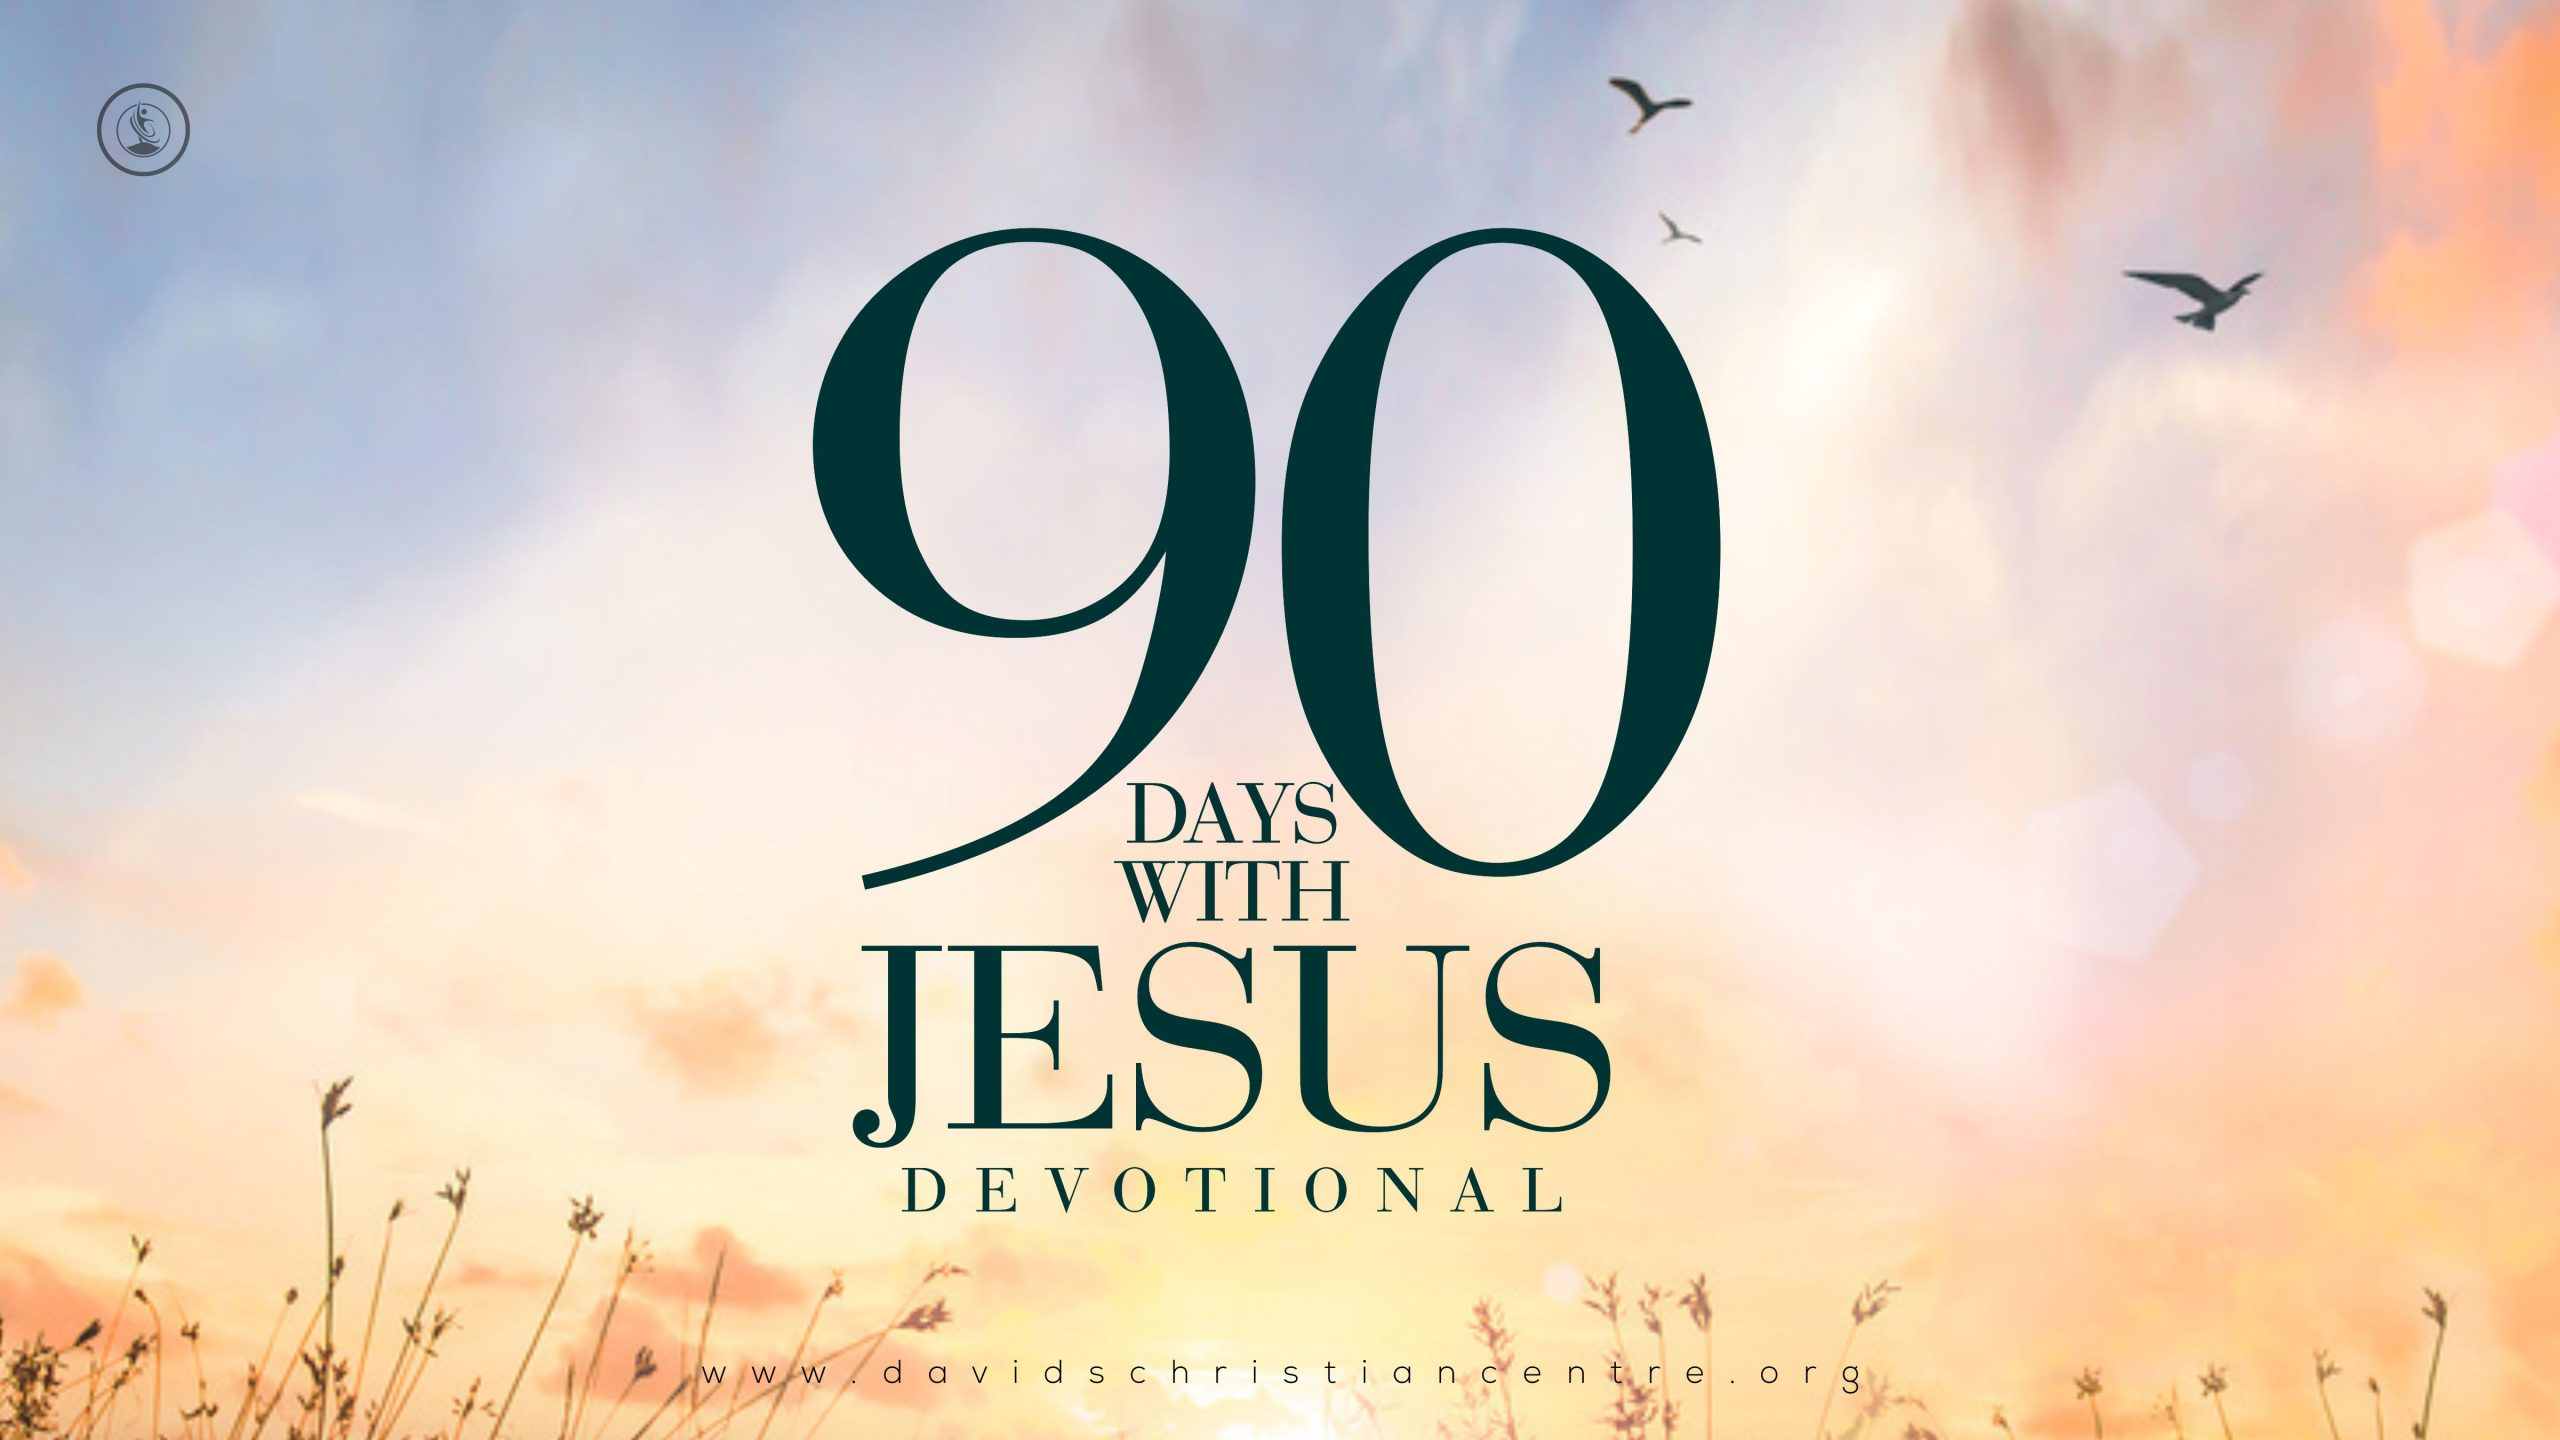 90 DAYS WITH JESUS DEVOTIONAL DAY 70